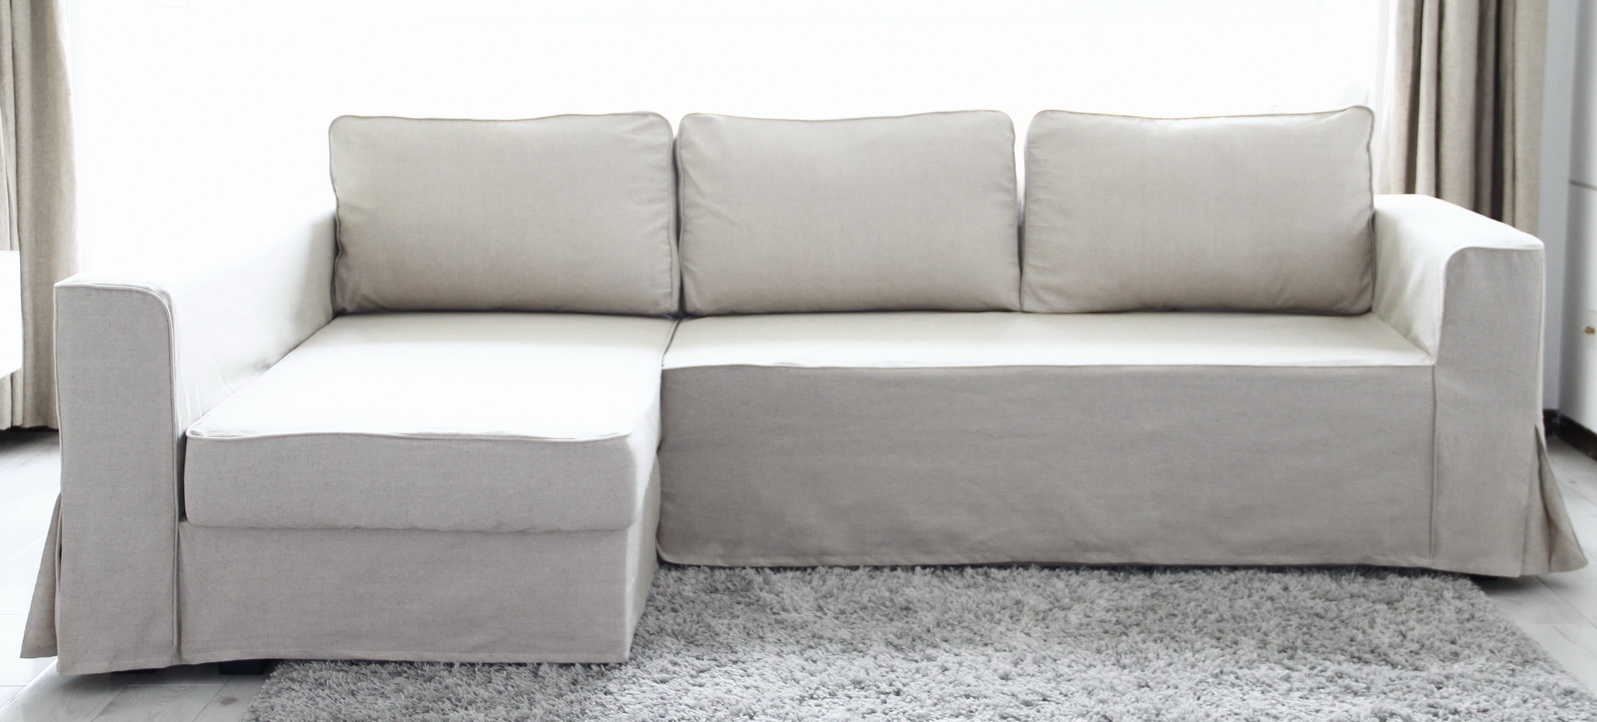 Sectional Sofa Covers Cheap Rattan Corner Sofas Click Clack Bed   Chair Modern Leather ...